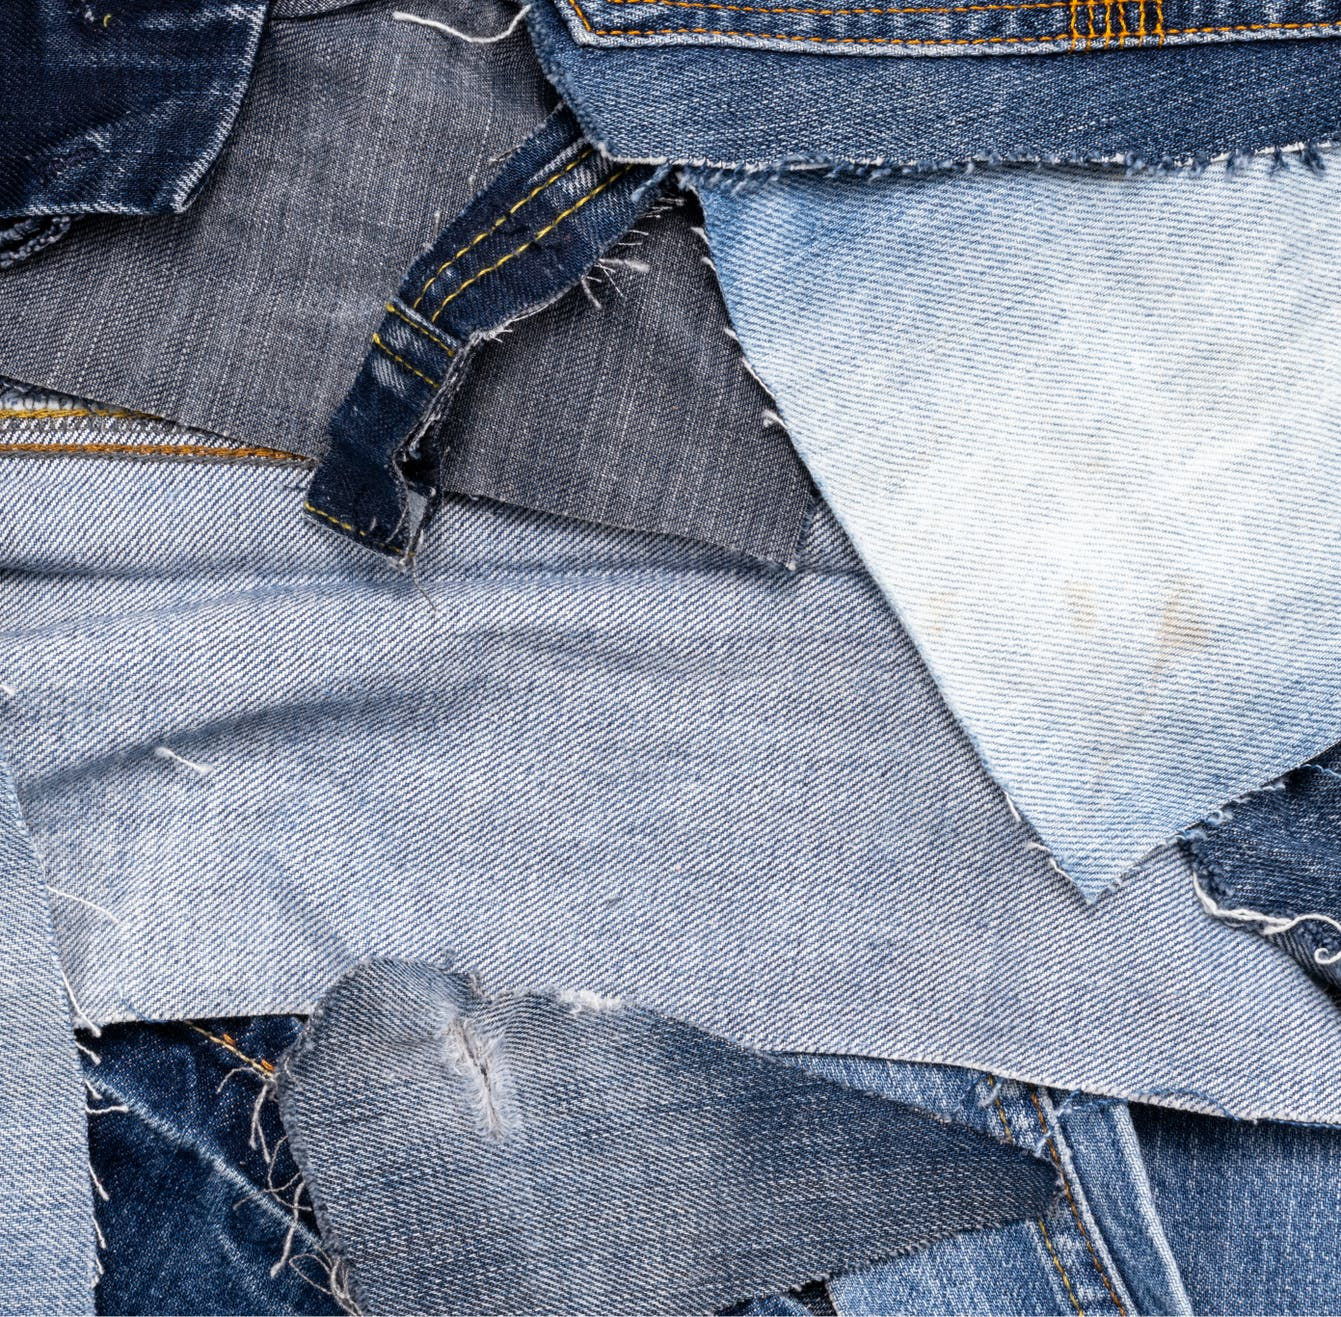 Cut up pieces of jean fabric